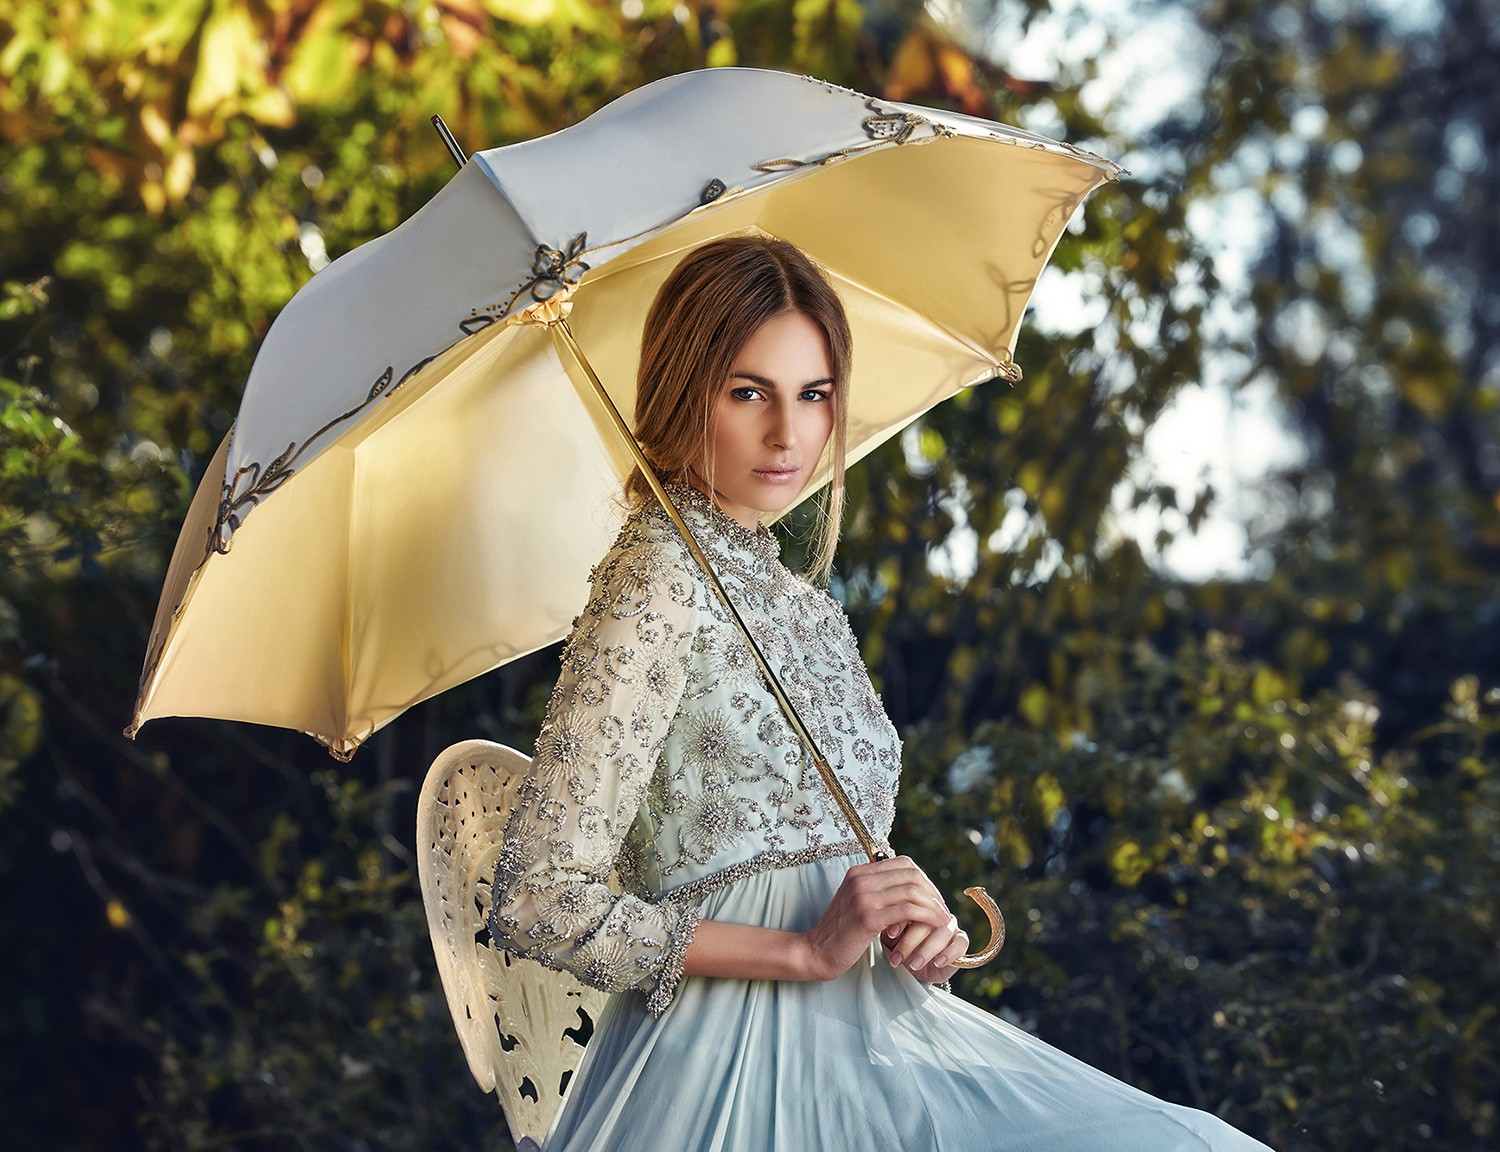 Luxury Artisan Umbrellas, Handmade in Italy since 1956